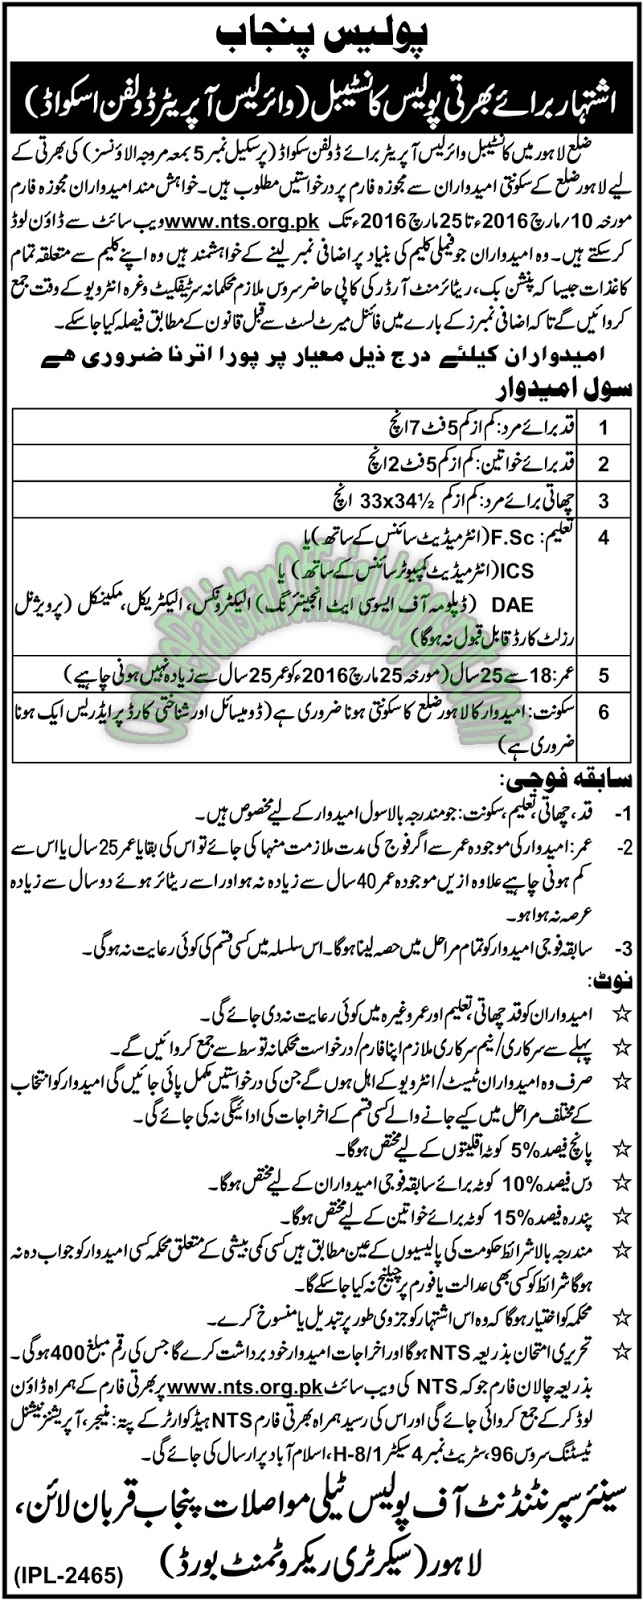 Police department jobs in lahore latest